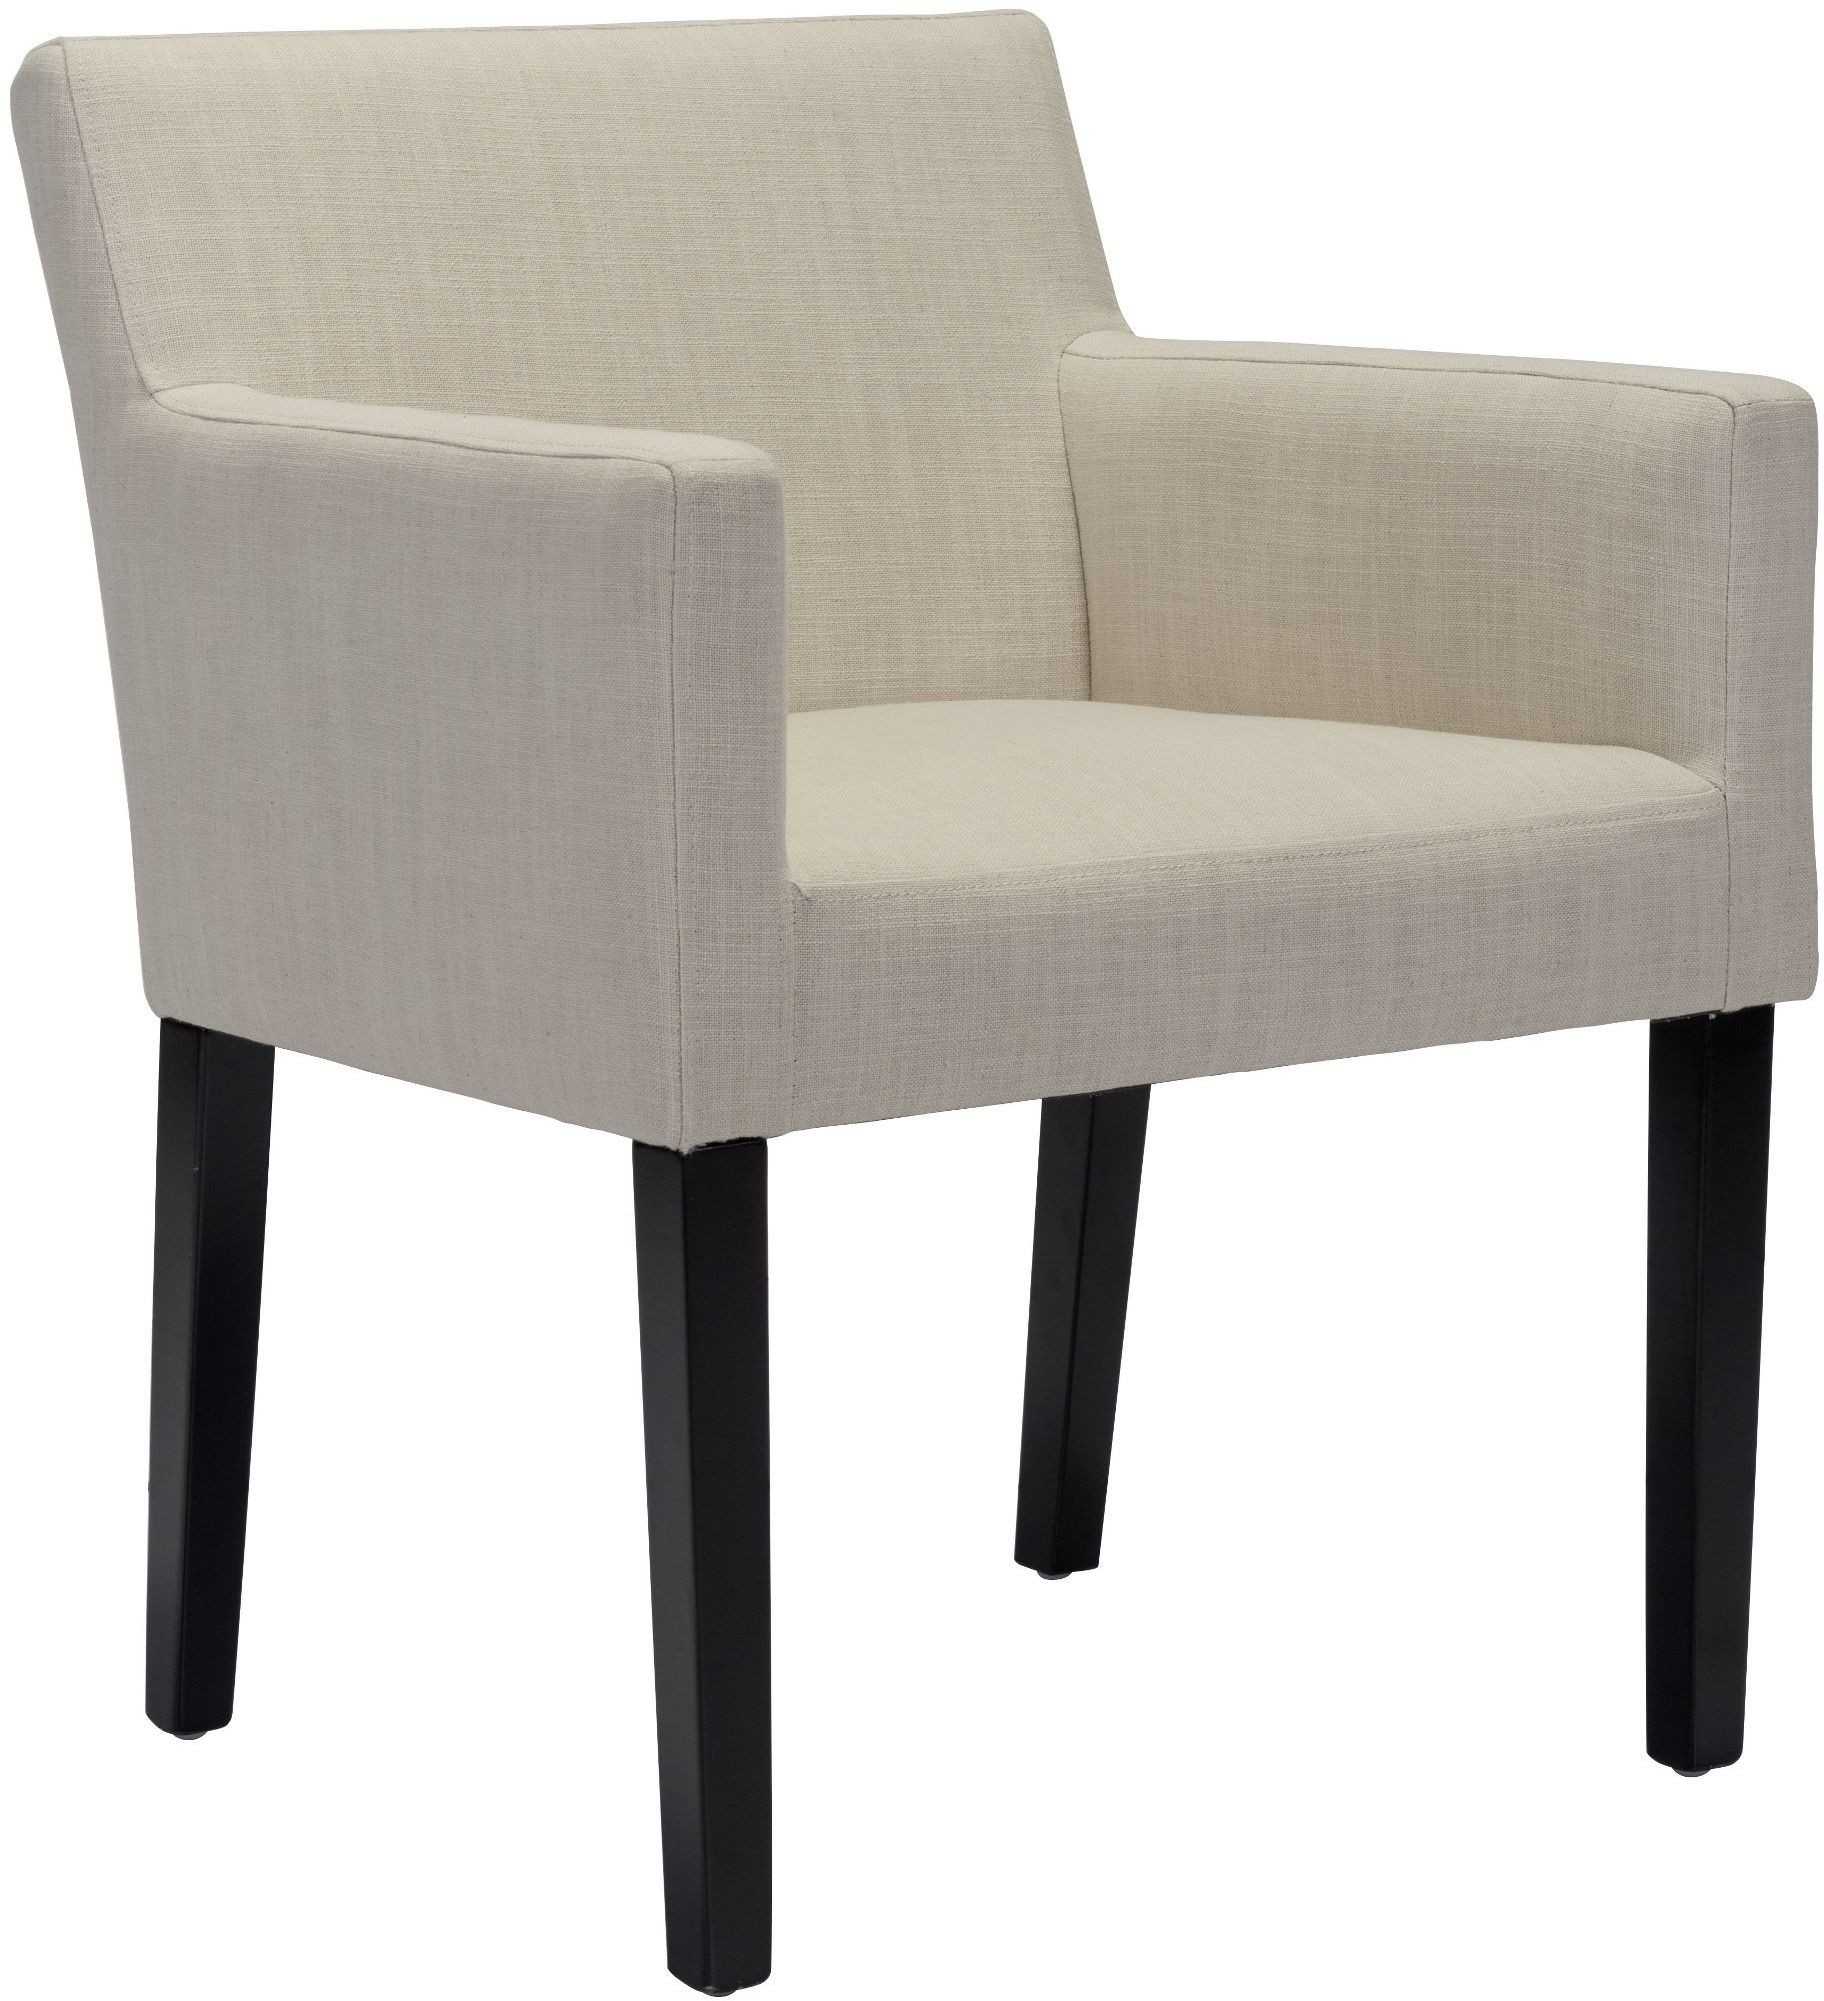 Franklin Beige Dining Chair Set Of 2 From Zuo Coleman